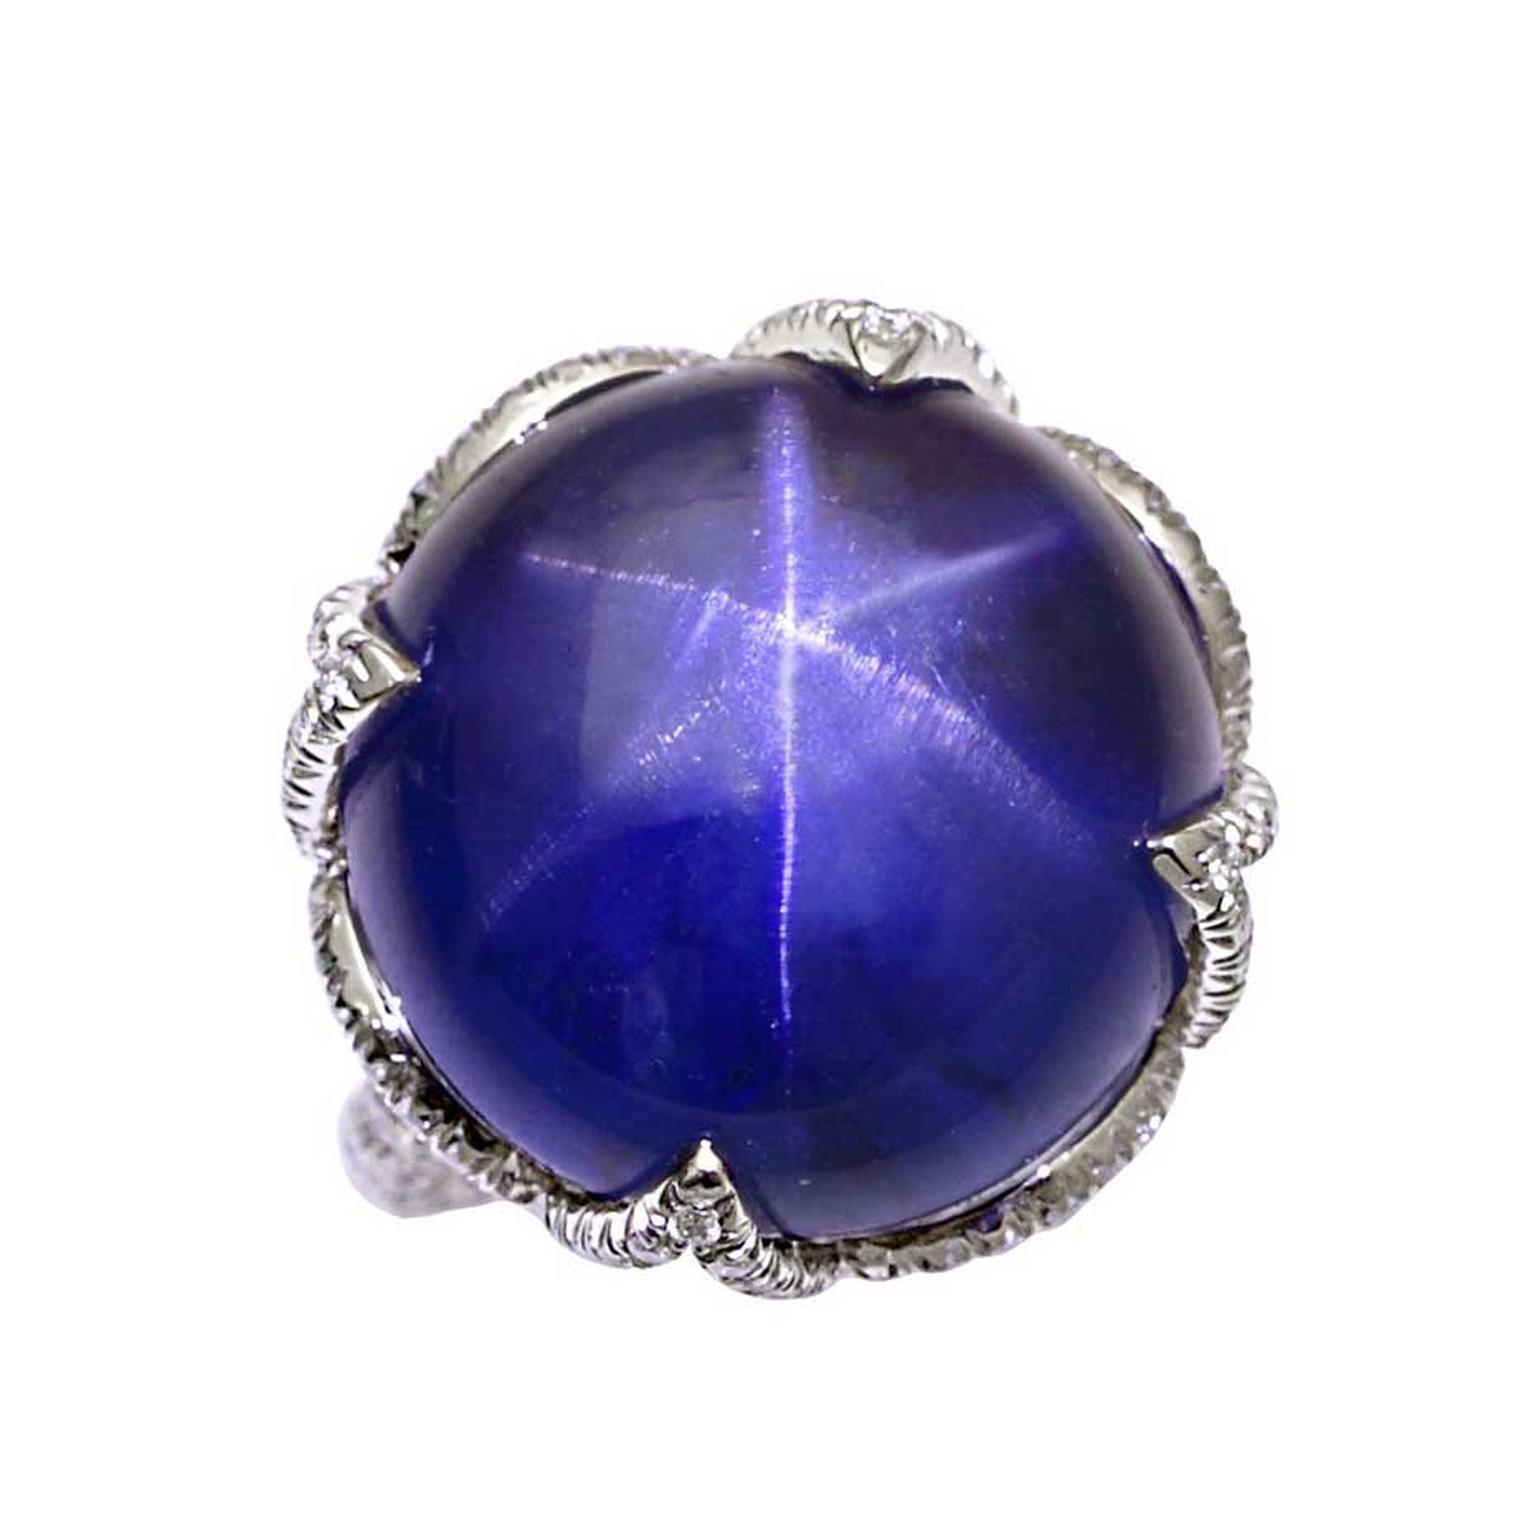 Natural star sapphire lotus ring in platinum with diamonds. Available at 1stdibs.com.